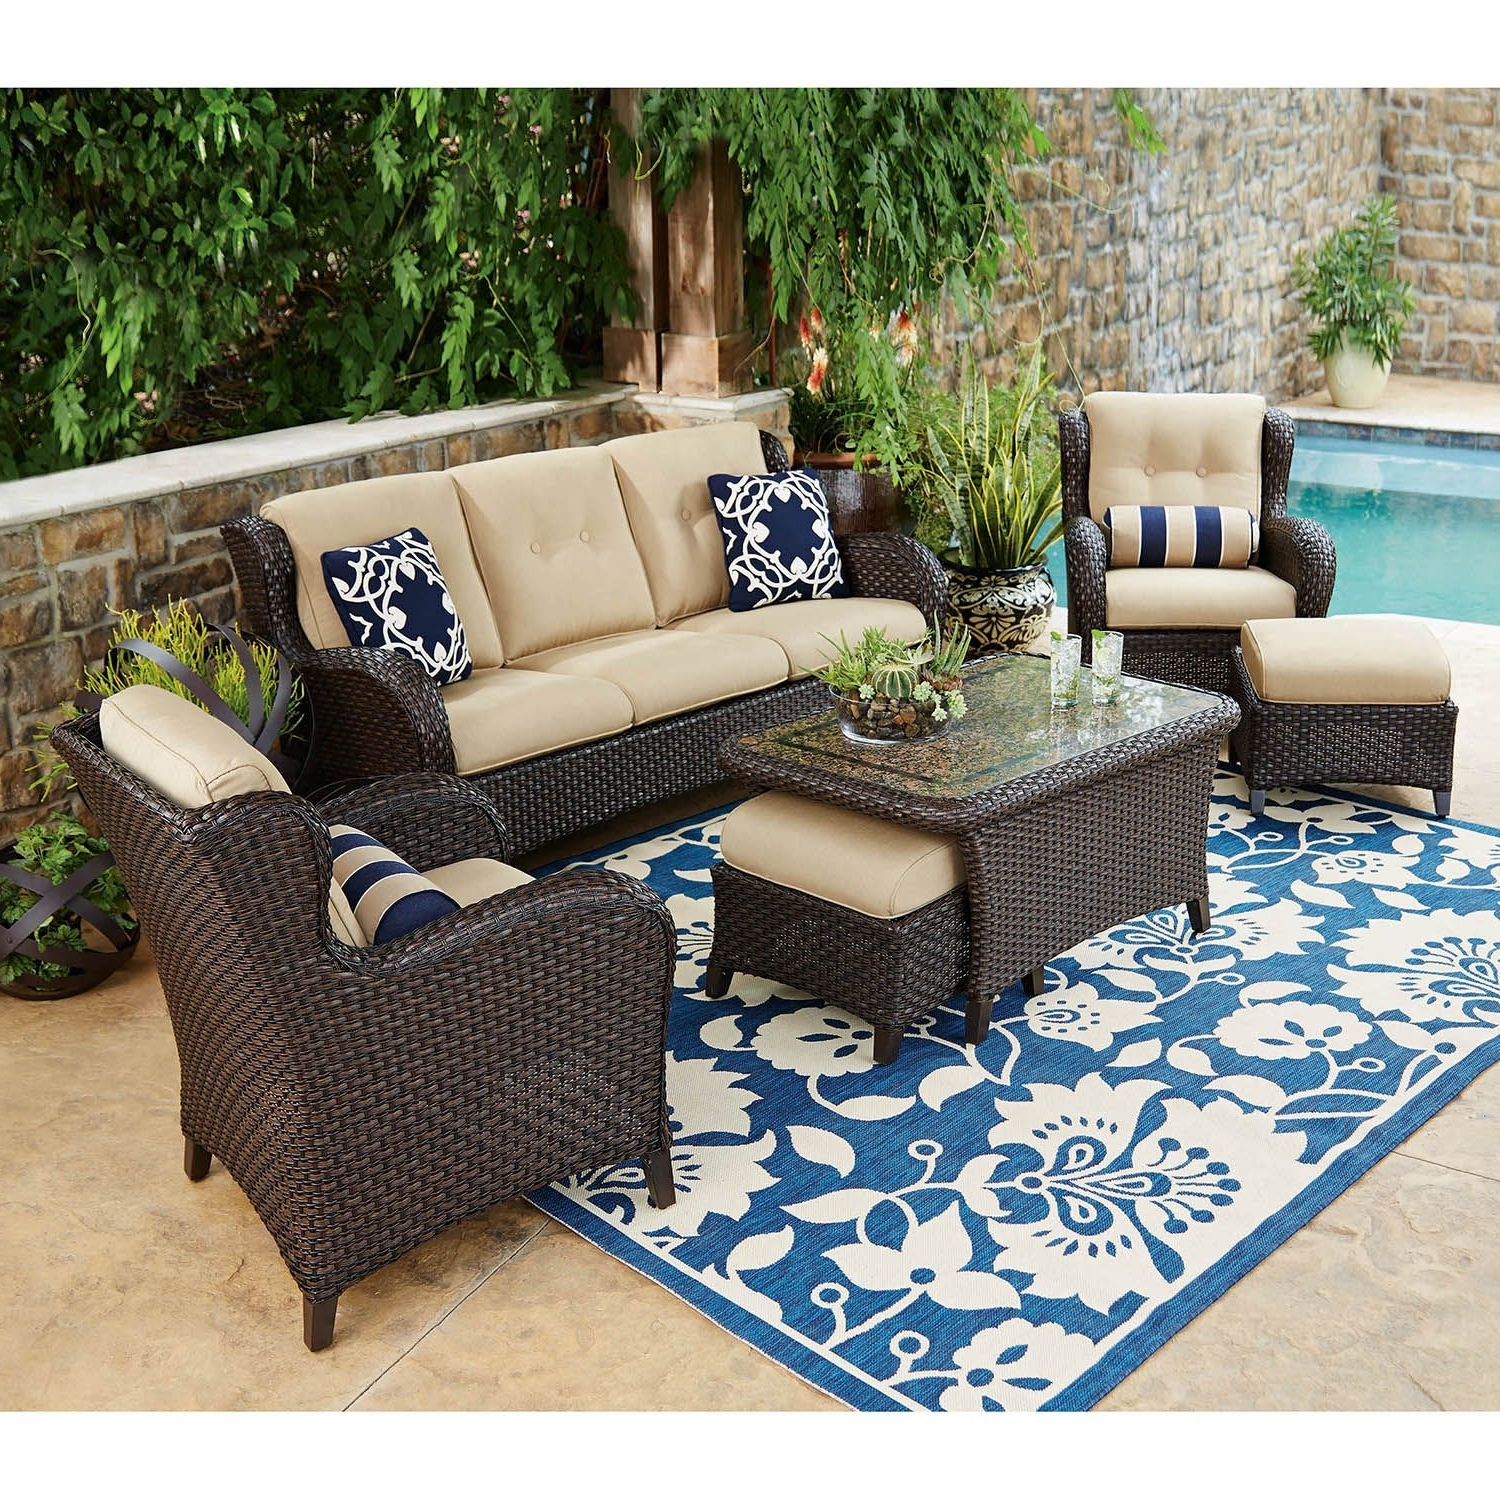 Patio Conversation Sets With Dining Table Pertaining To Most Recent Patio : Clearance Awesome Chair White Outdoor Dining Set New (View 18 of 20)